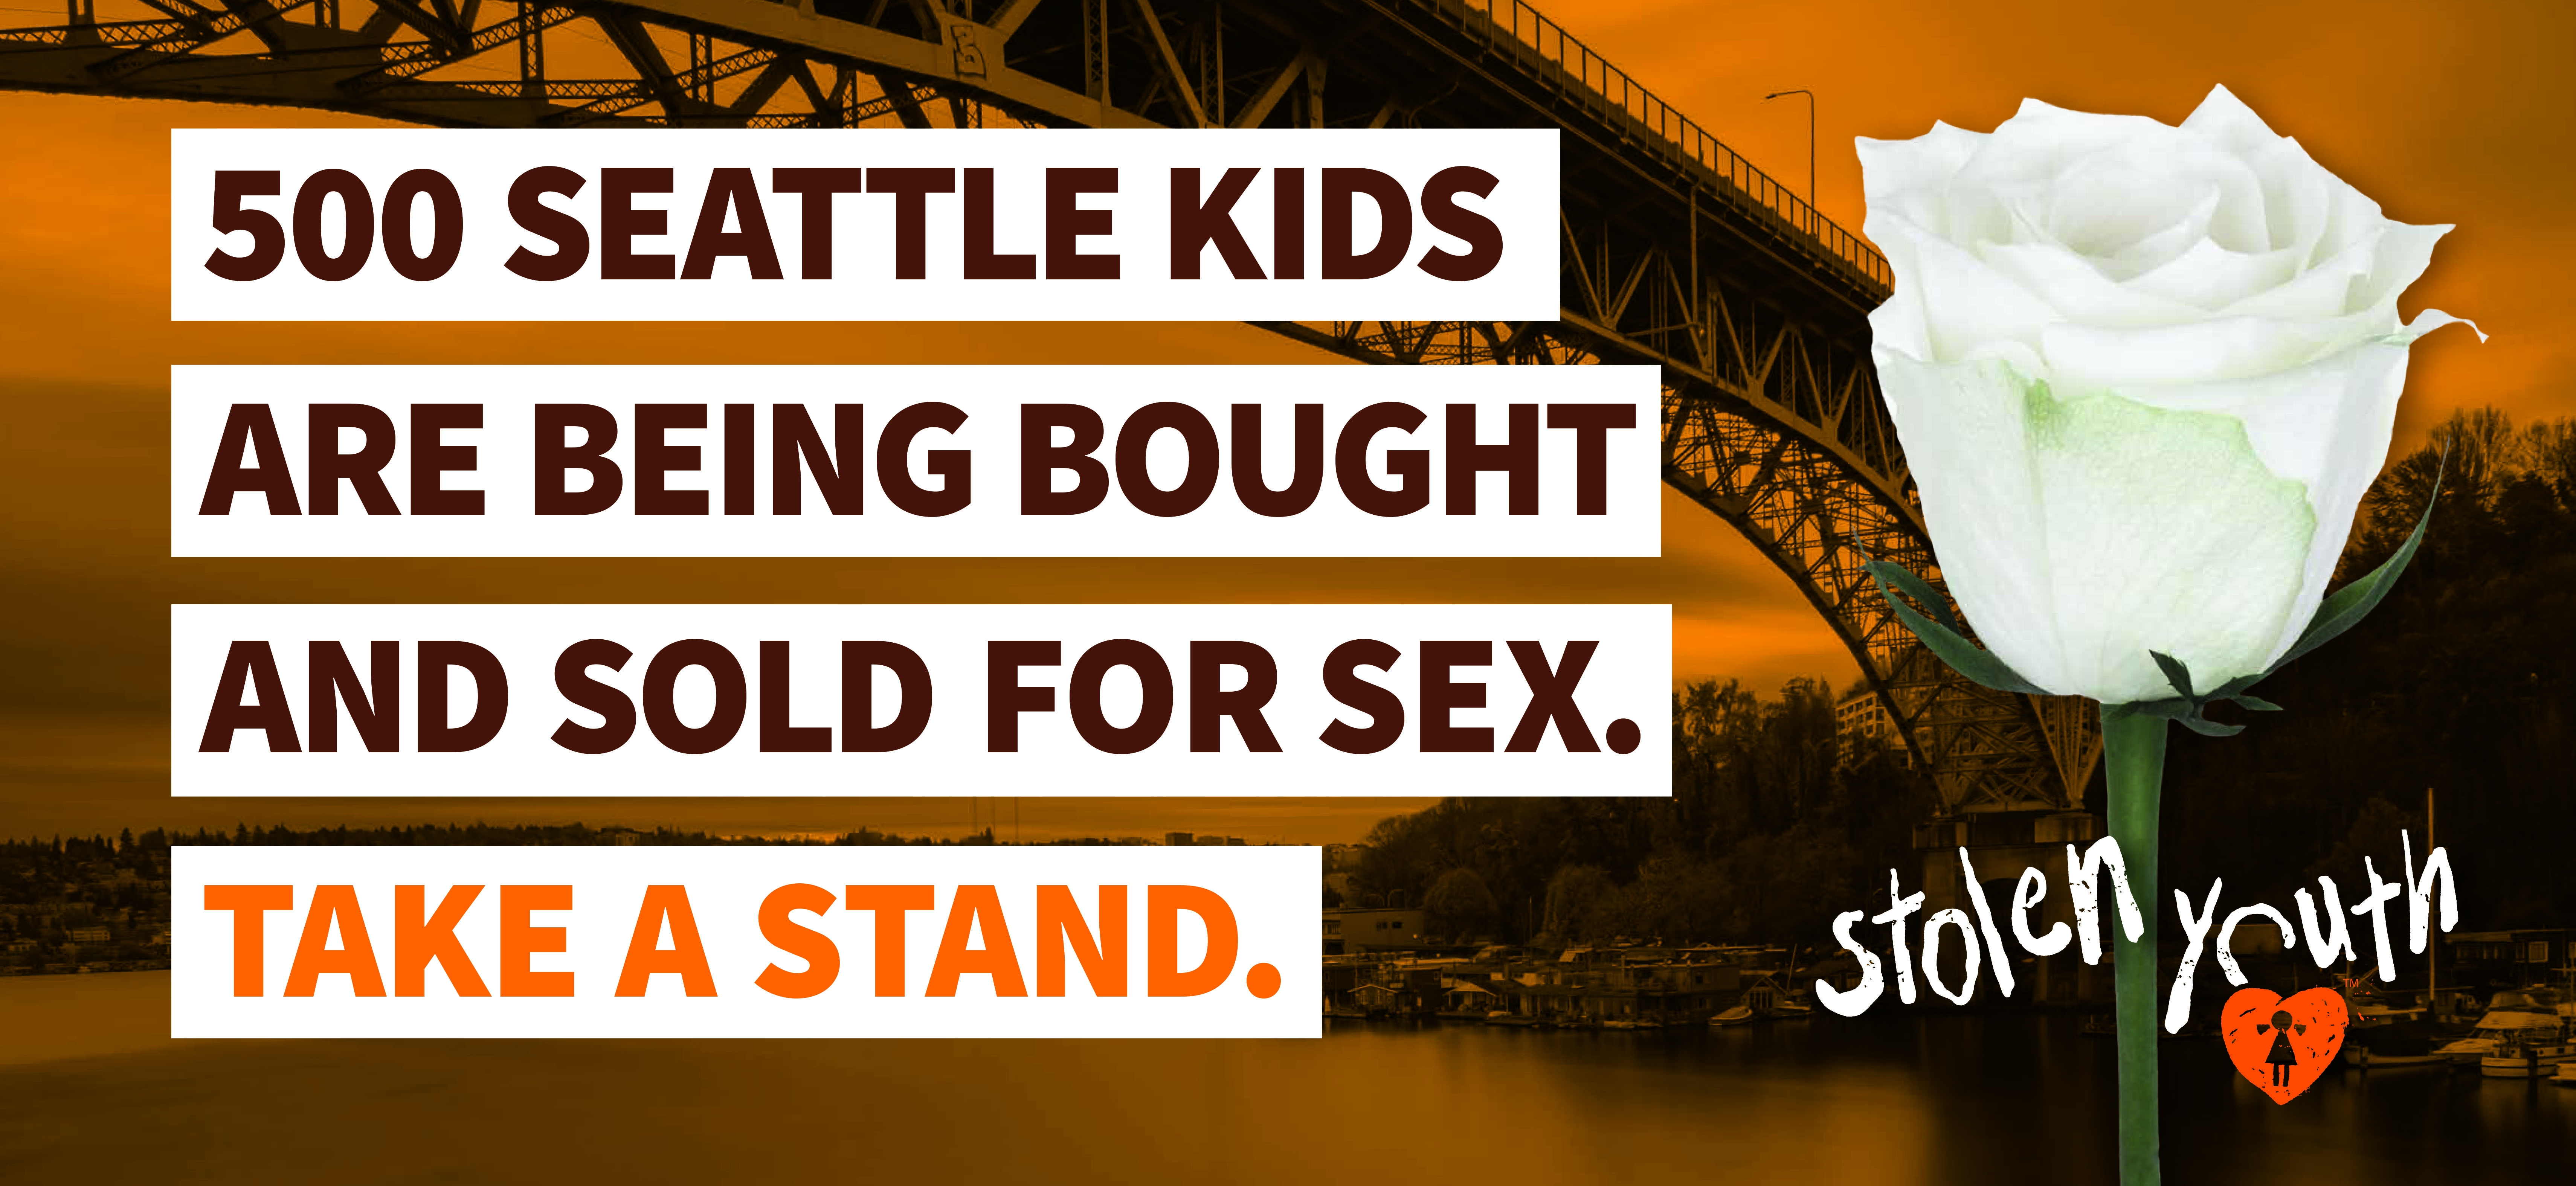 How to buy sex seattle